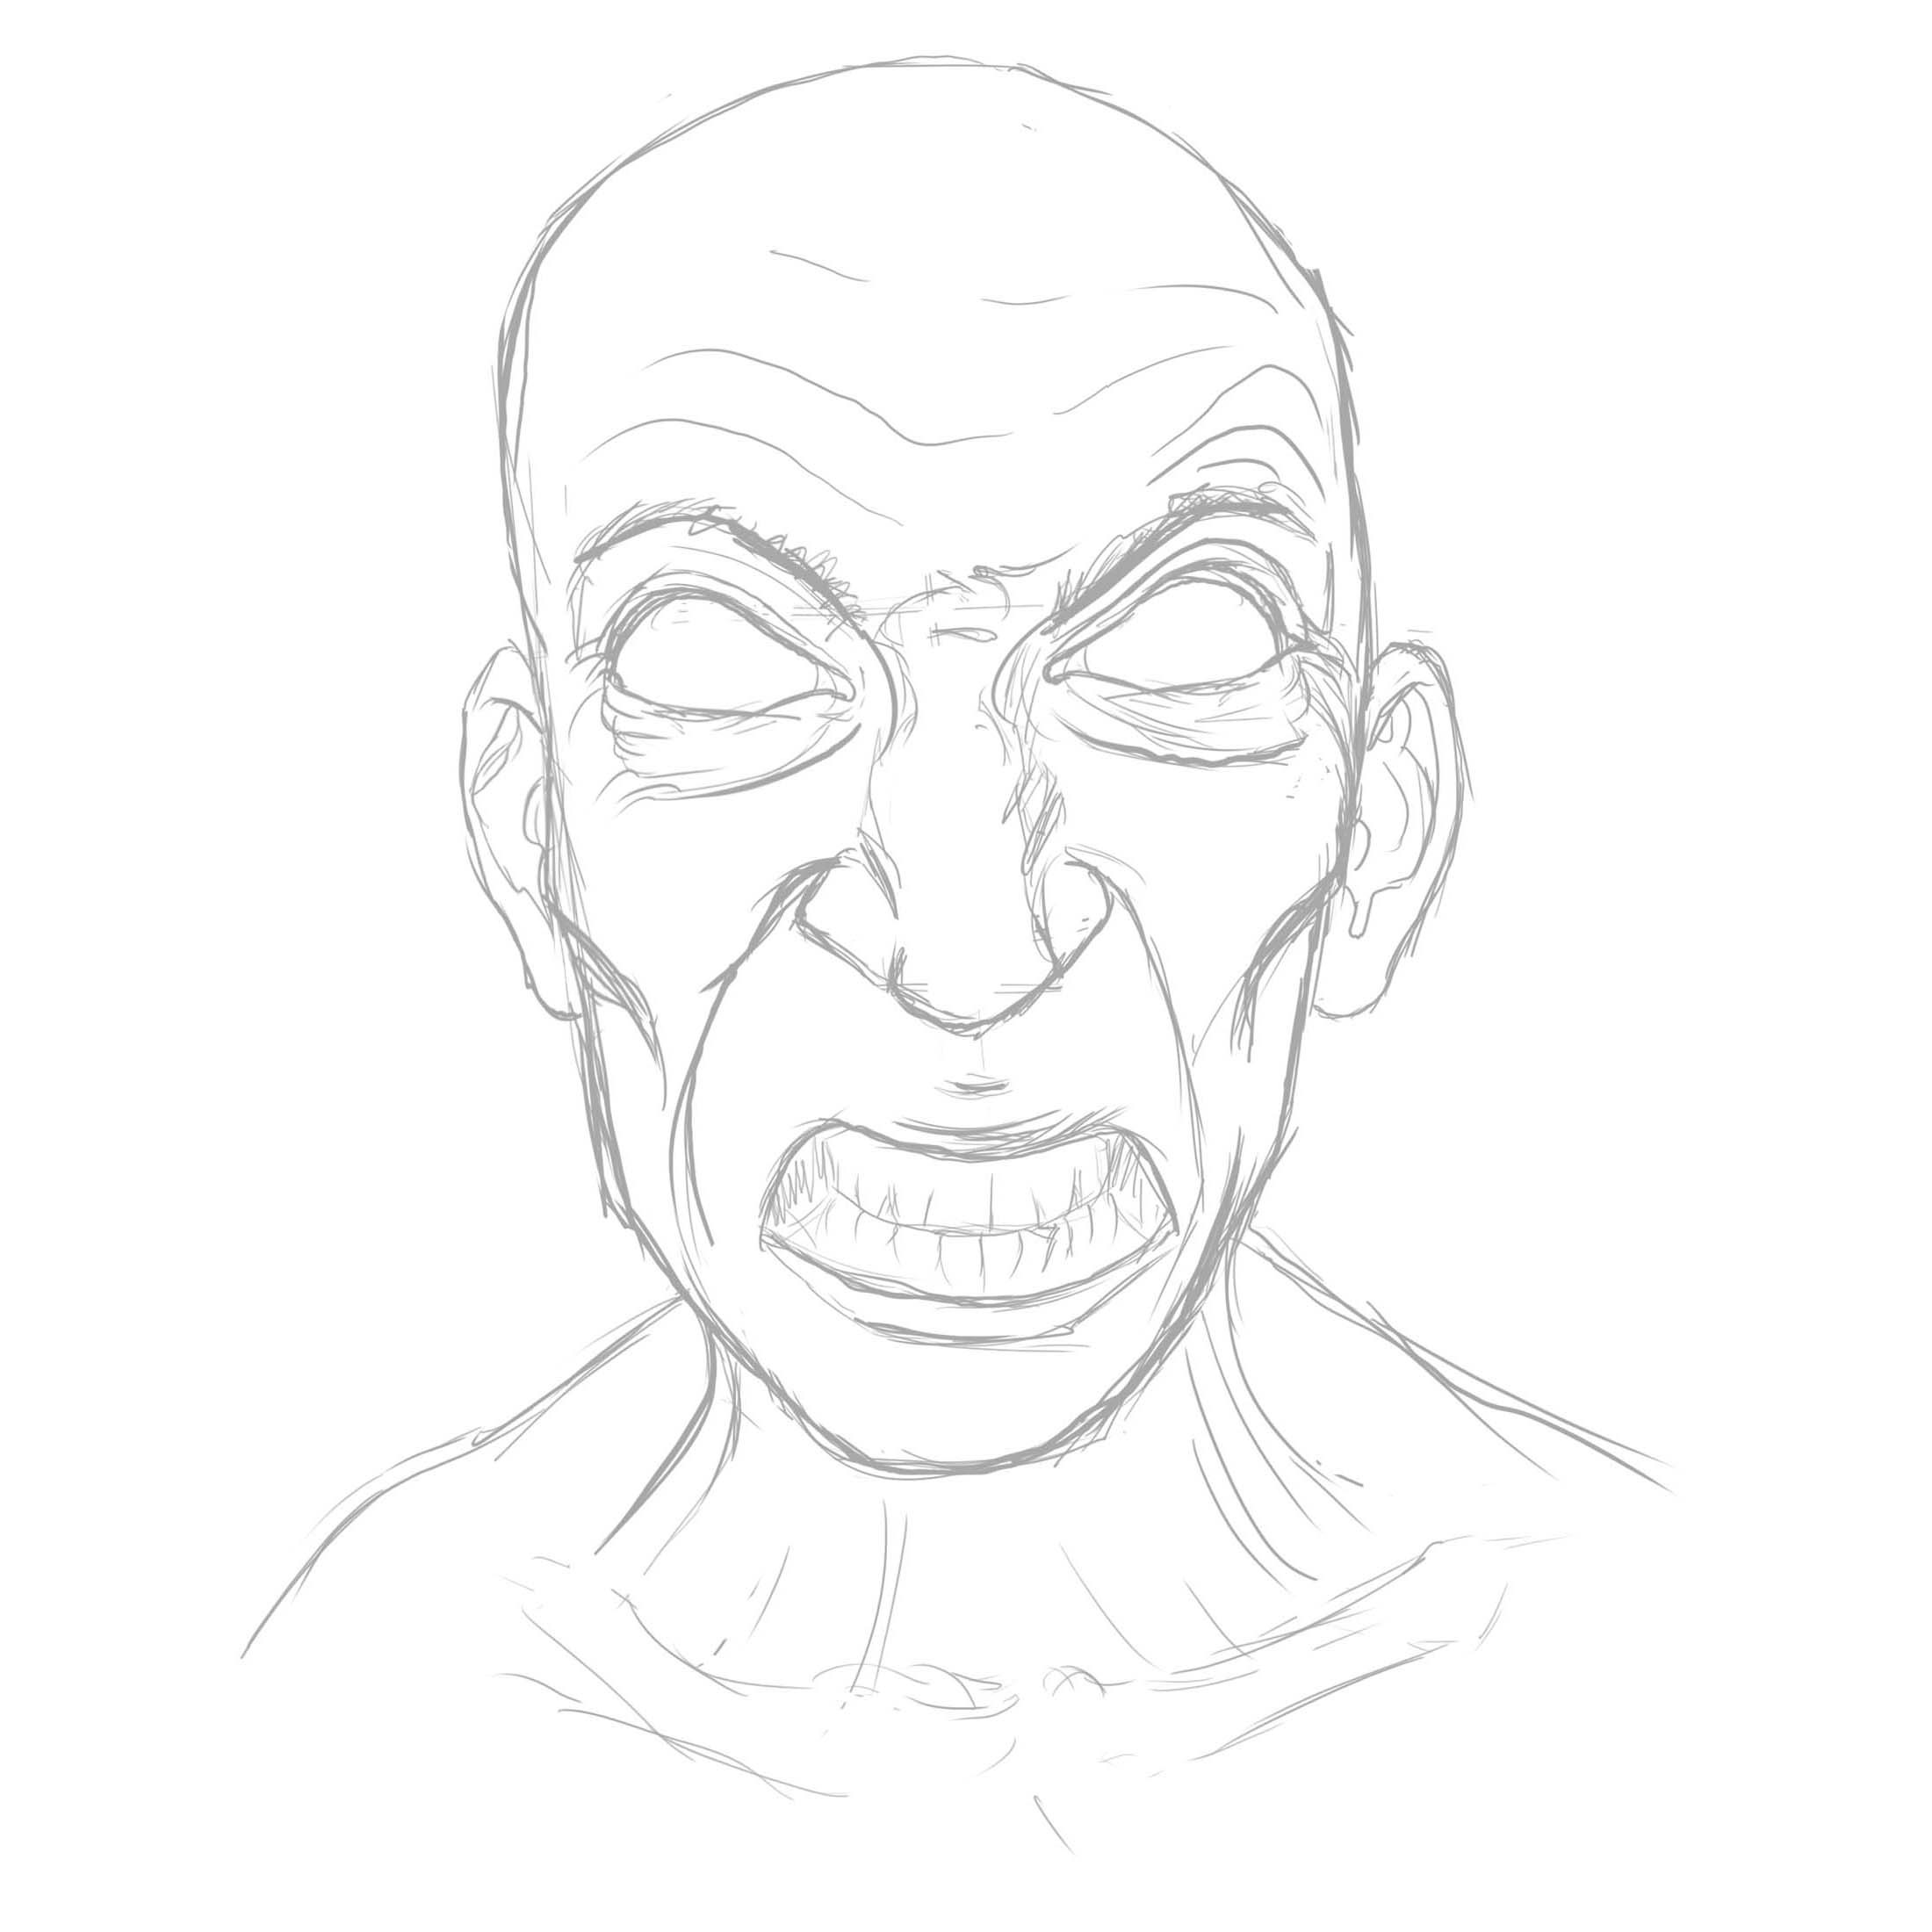 Started with a sketch and just went with the flow. I just knew I wanted him angry and VERY pretty.